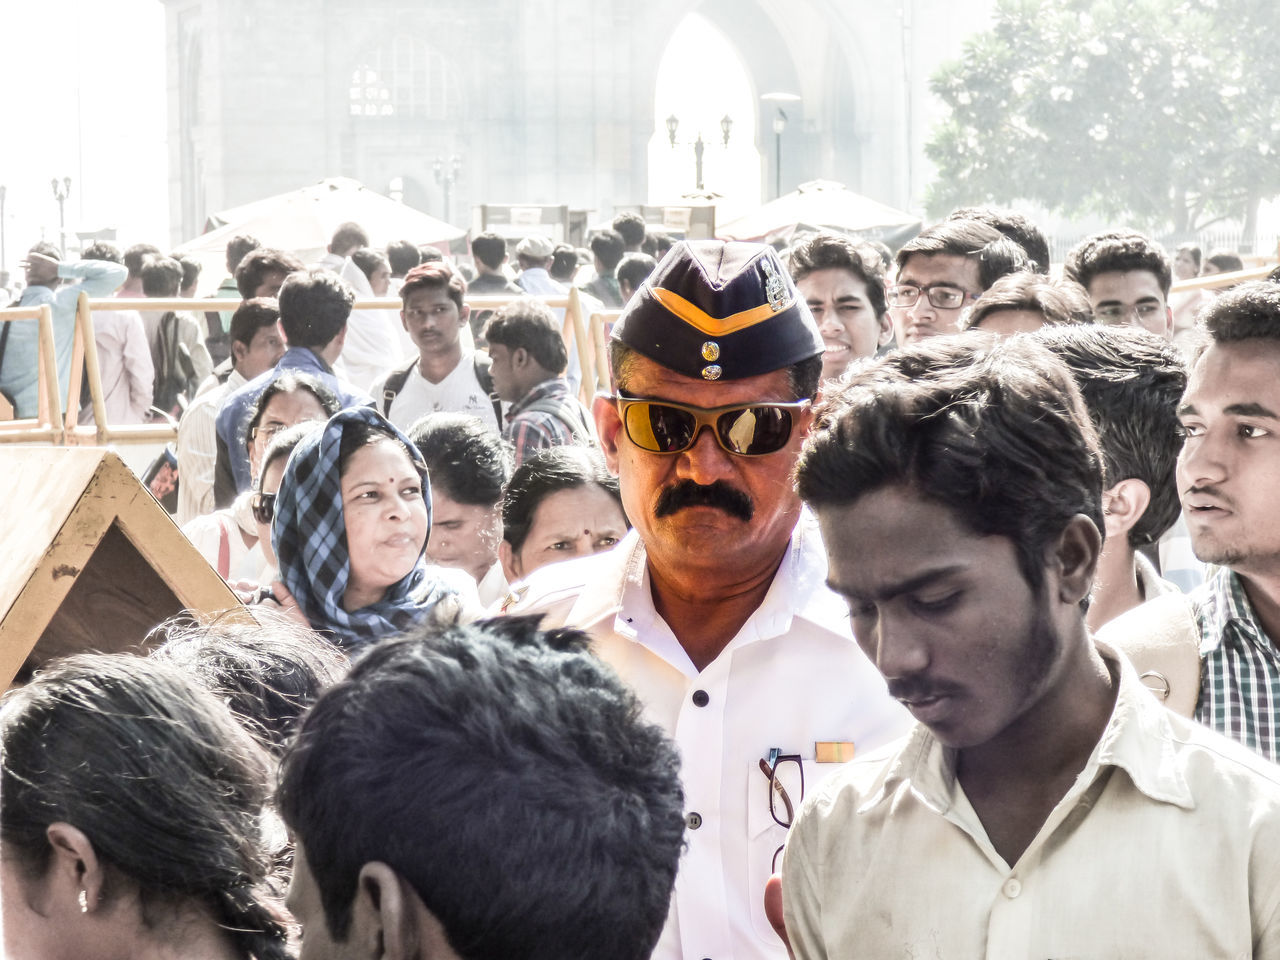 Dabangg Police Crowd Focus Front View Headshot India Gate Men Mumbai Meri Jaan Person Portrait Traffic Police